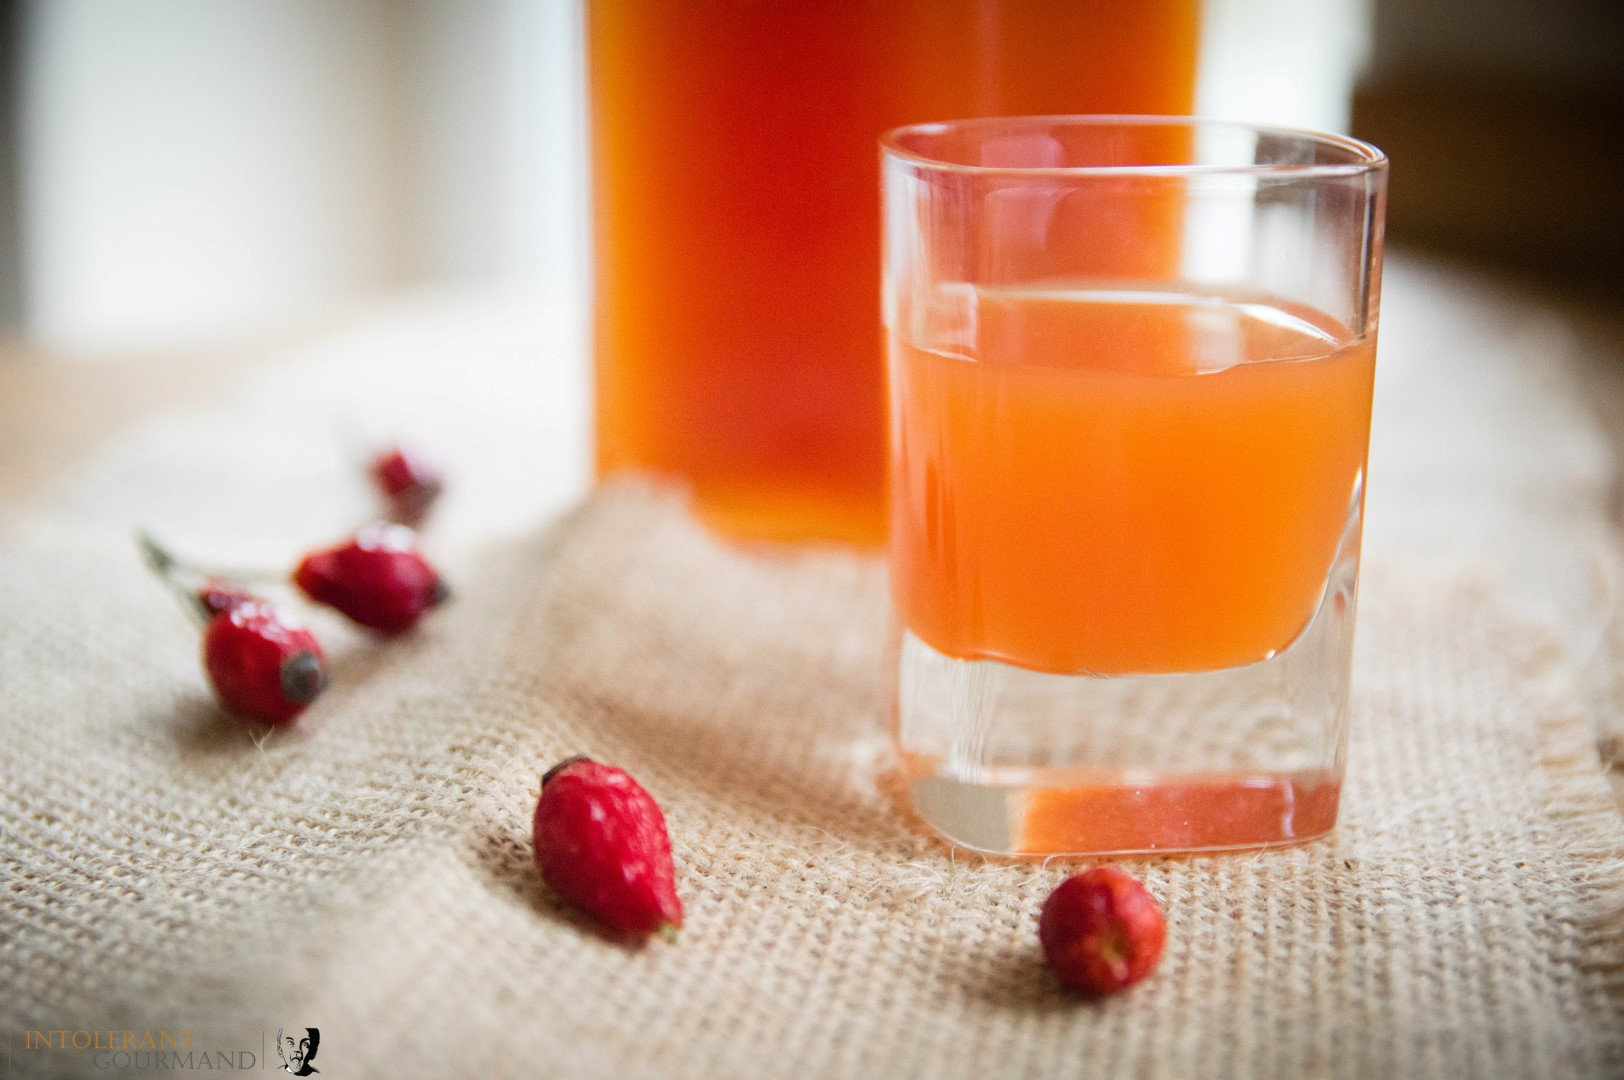 Rosehip Syrup - A fruity syrup with a comforting and warming flavour. Perfect on it's own, over pancakes or ice cream, stirred into porridge and so much more! www.intolerantgourmand.com